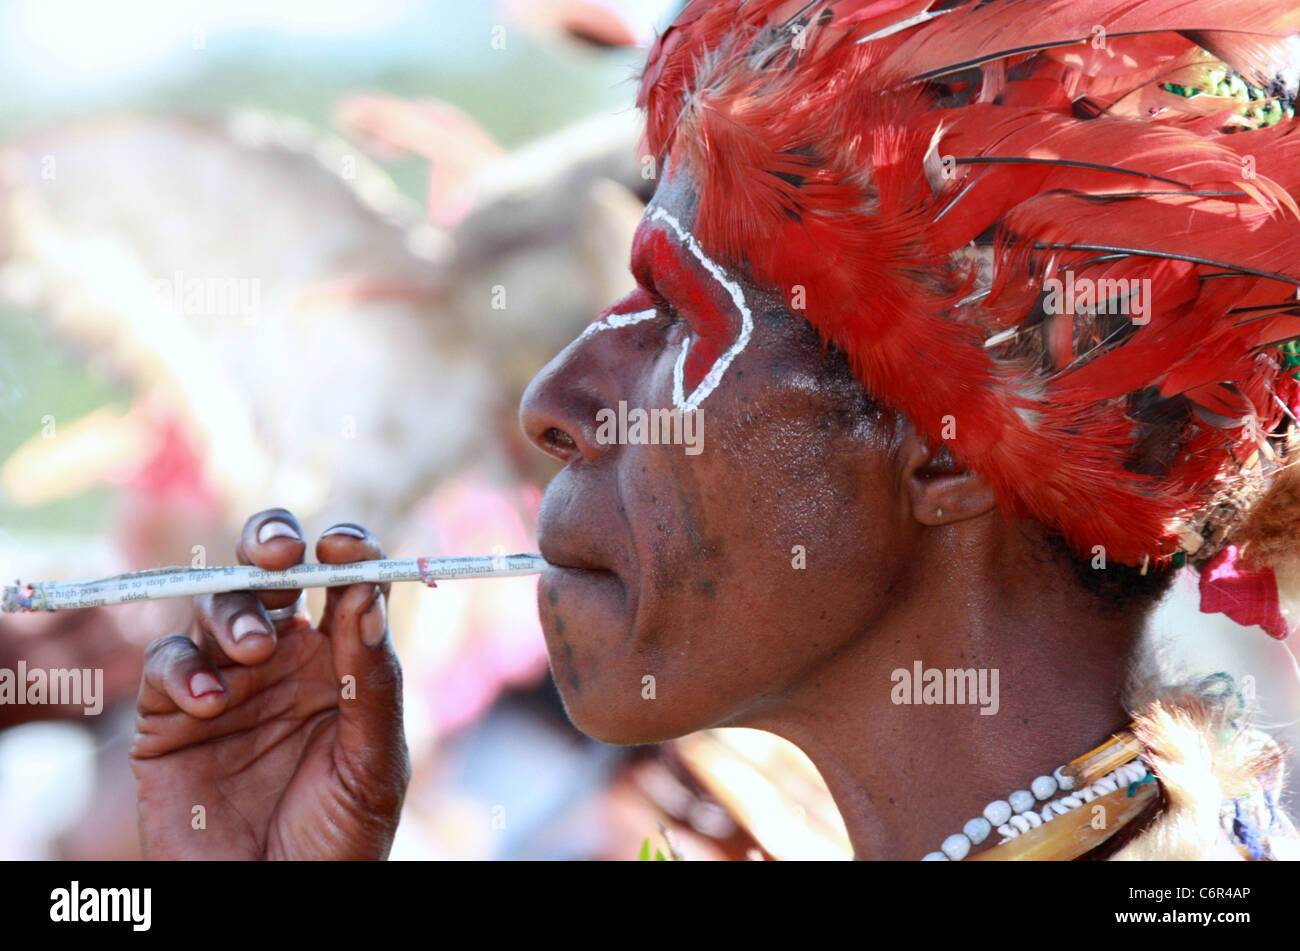 Tribeswoman from Papua New Guinea smoking a cigarette rolled from newspaper - Stock Image